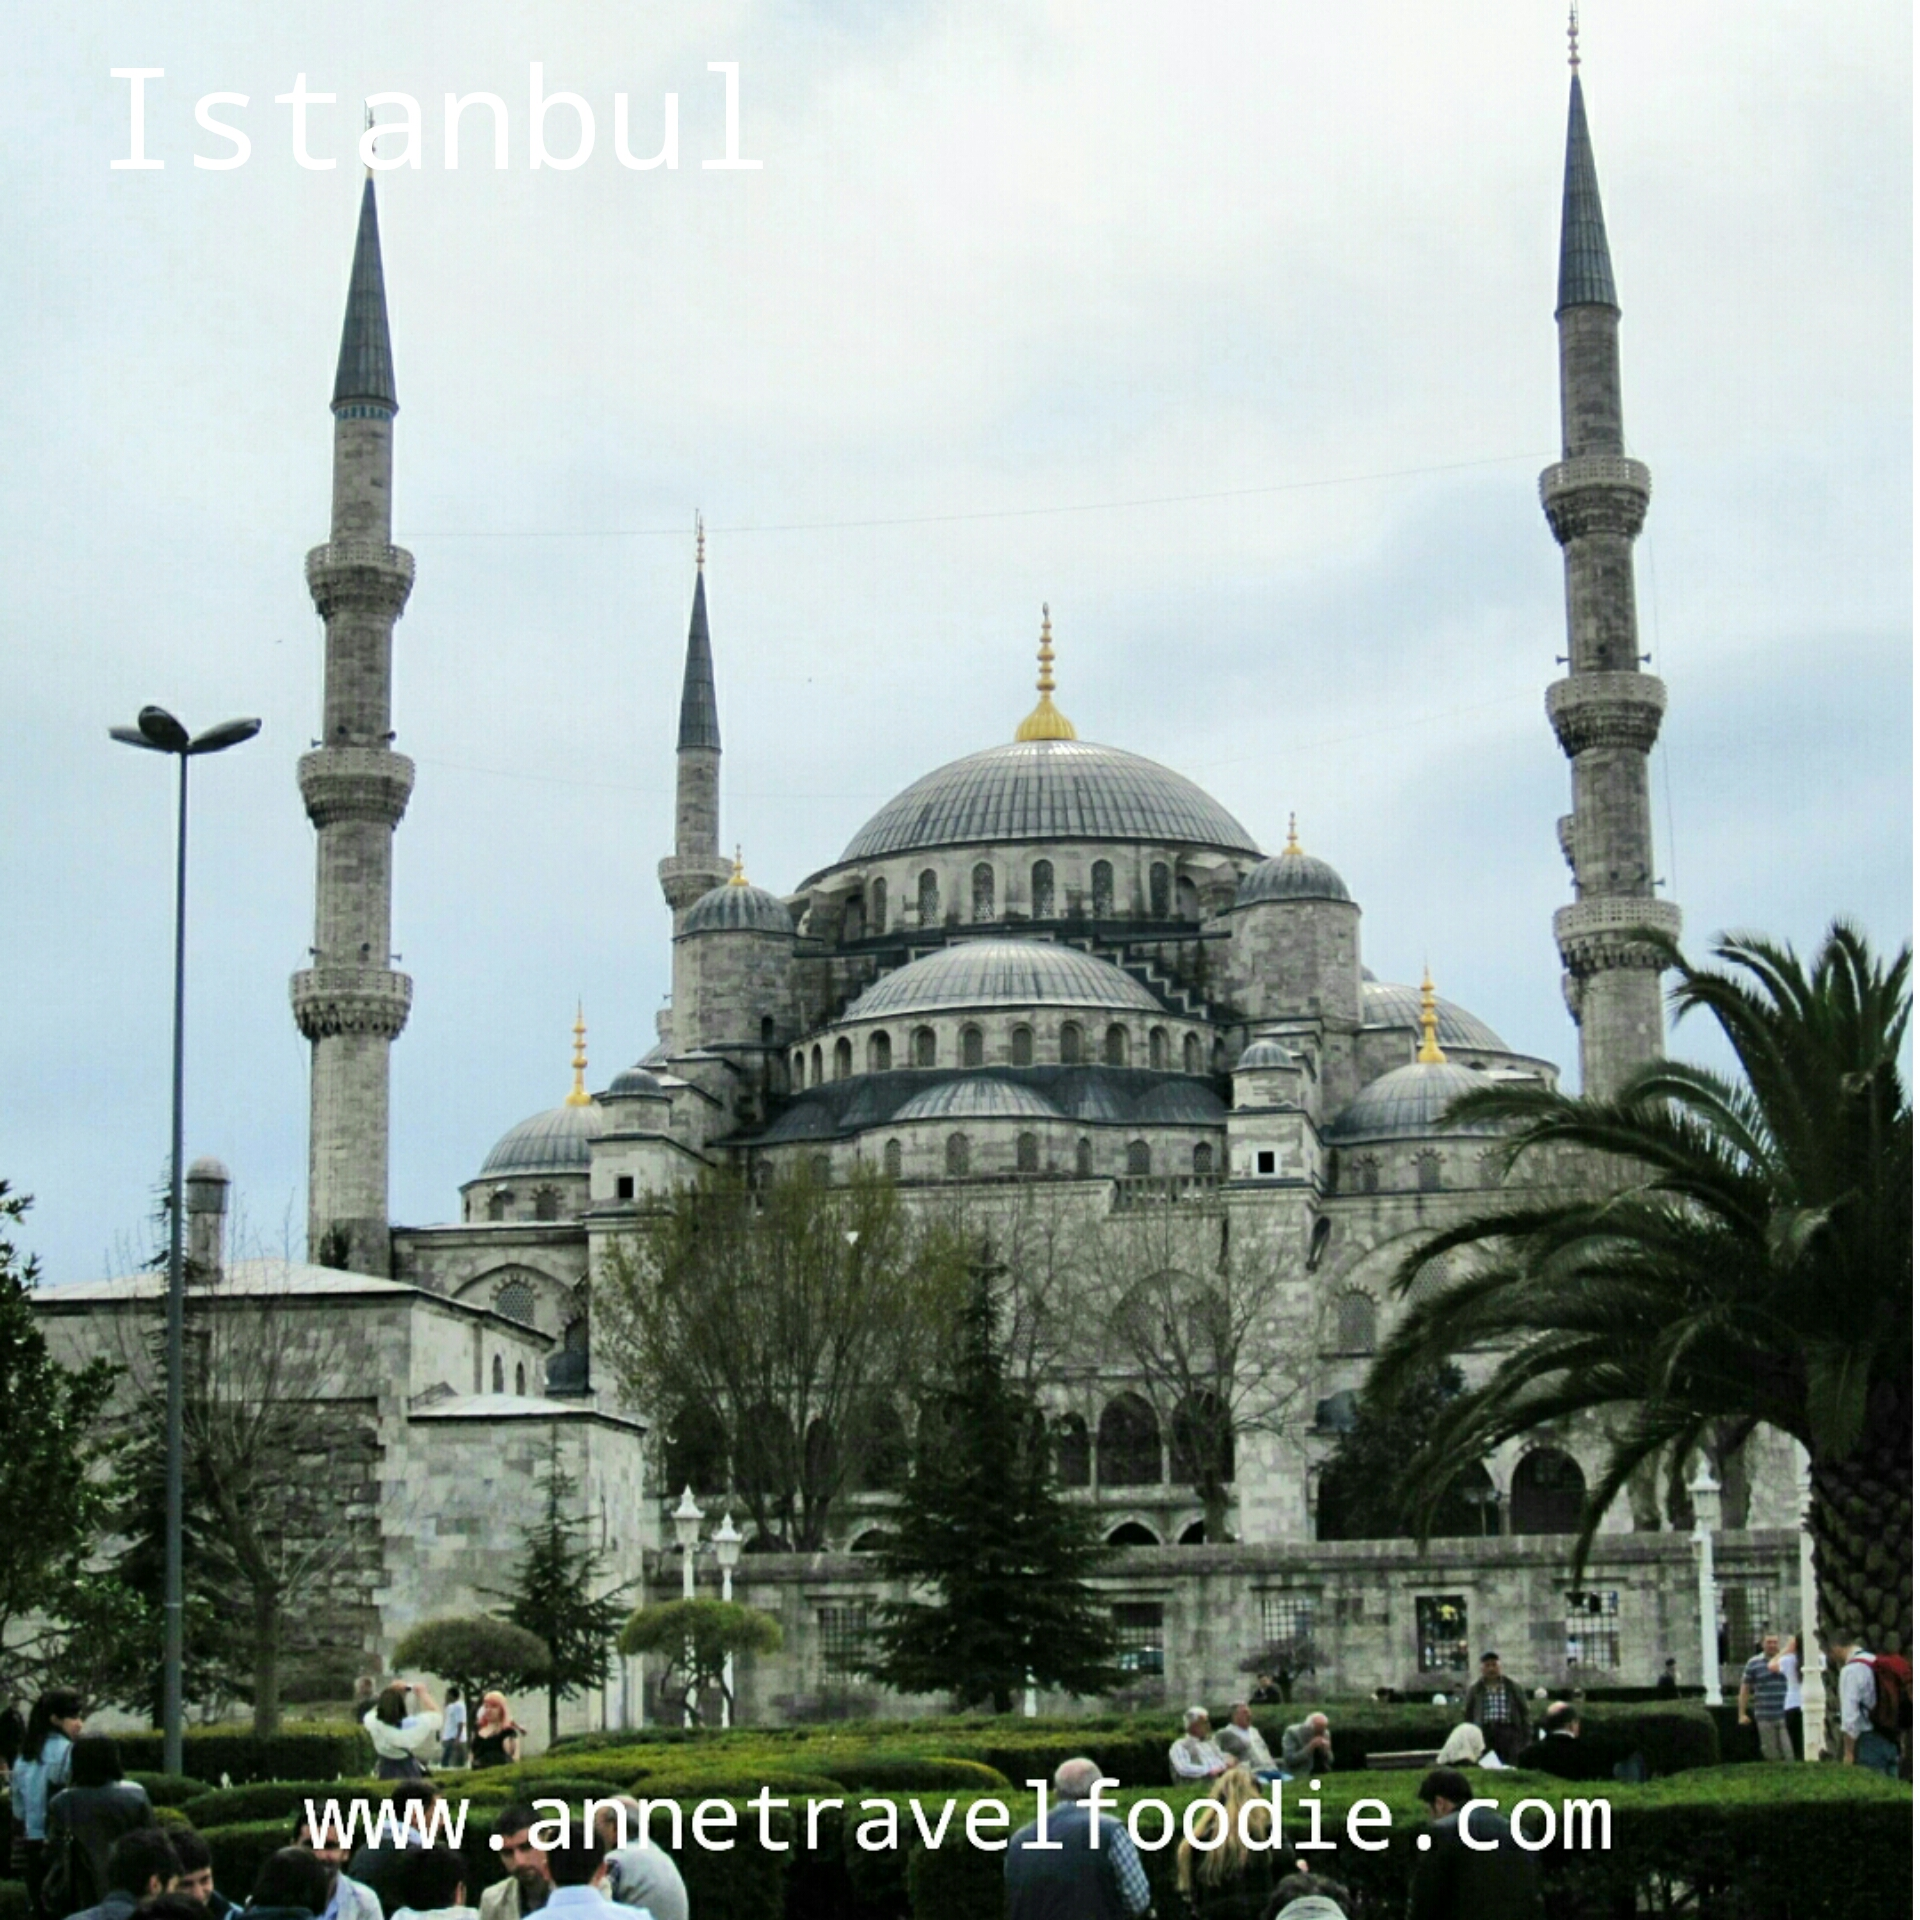 Istanbul annetravelfoodie